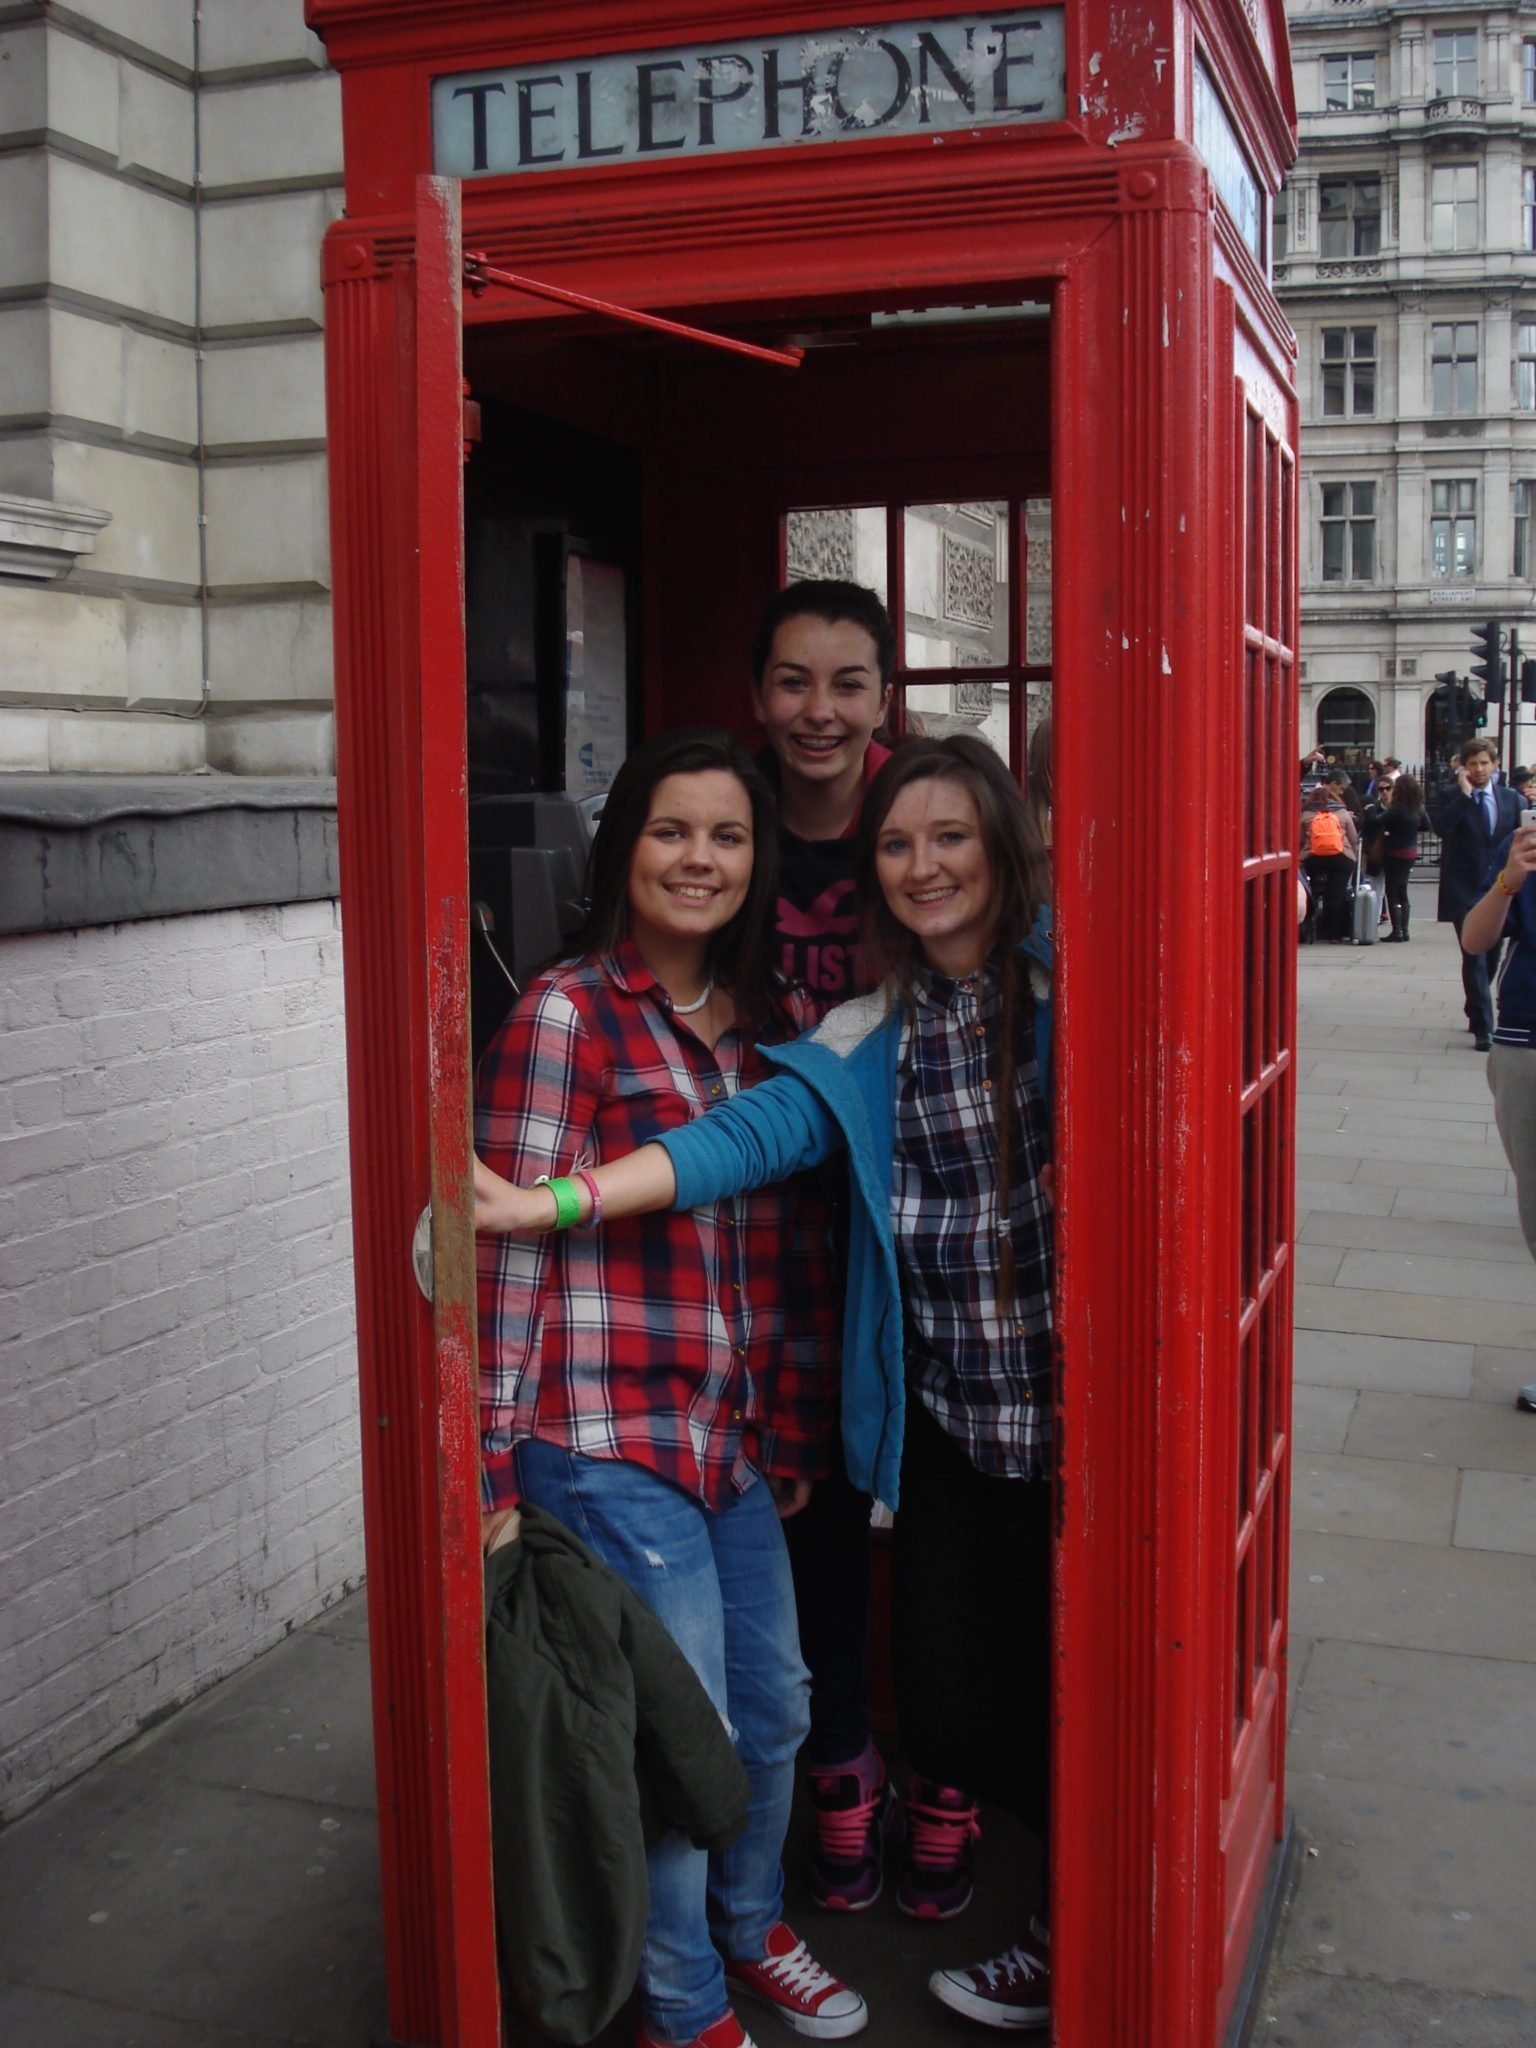 desmond college transition year trip to london: Lauren Moloney, Stacey Flynn and Sarah Flatley, April 2015